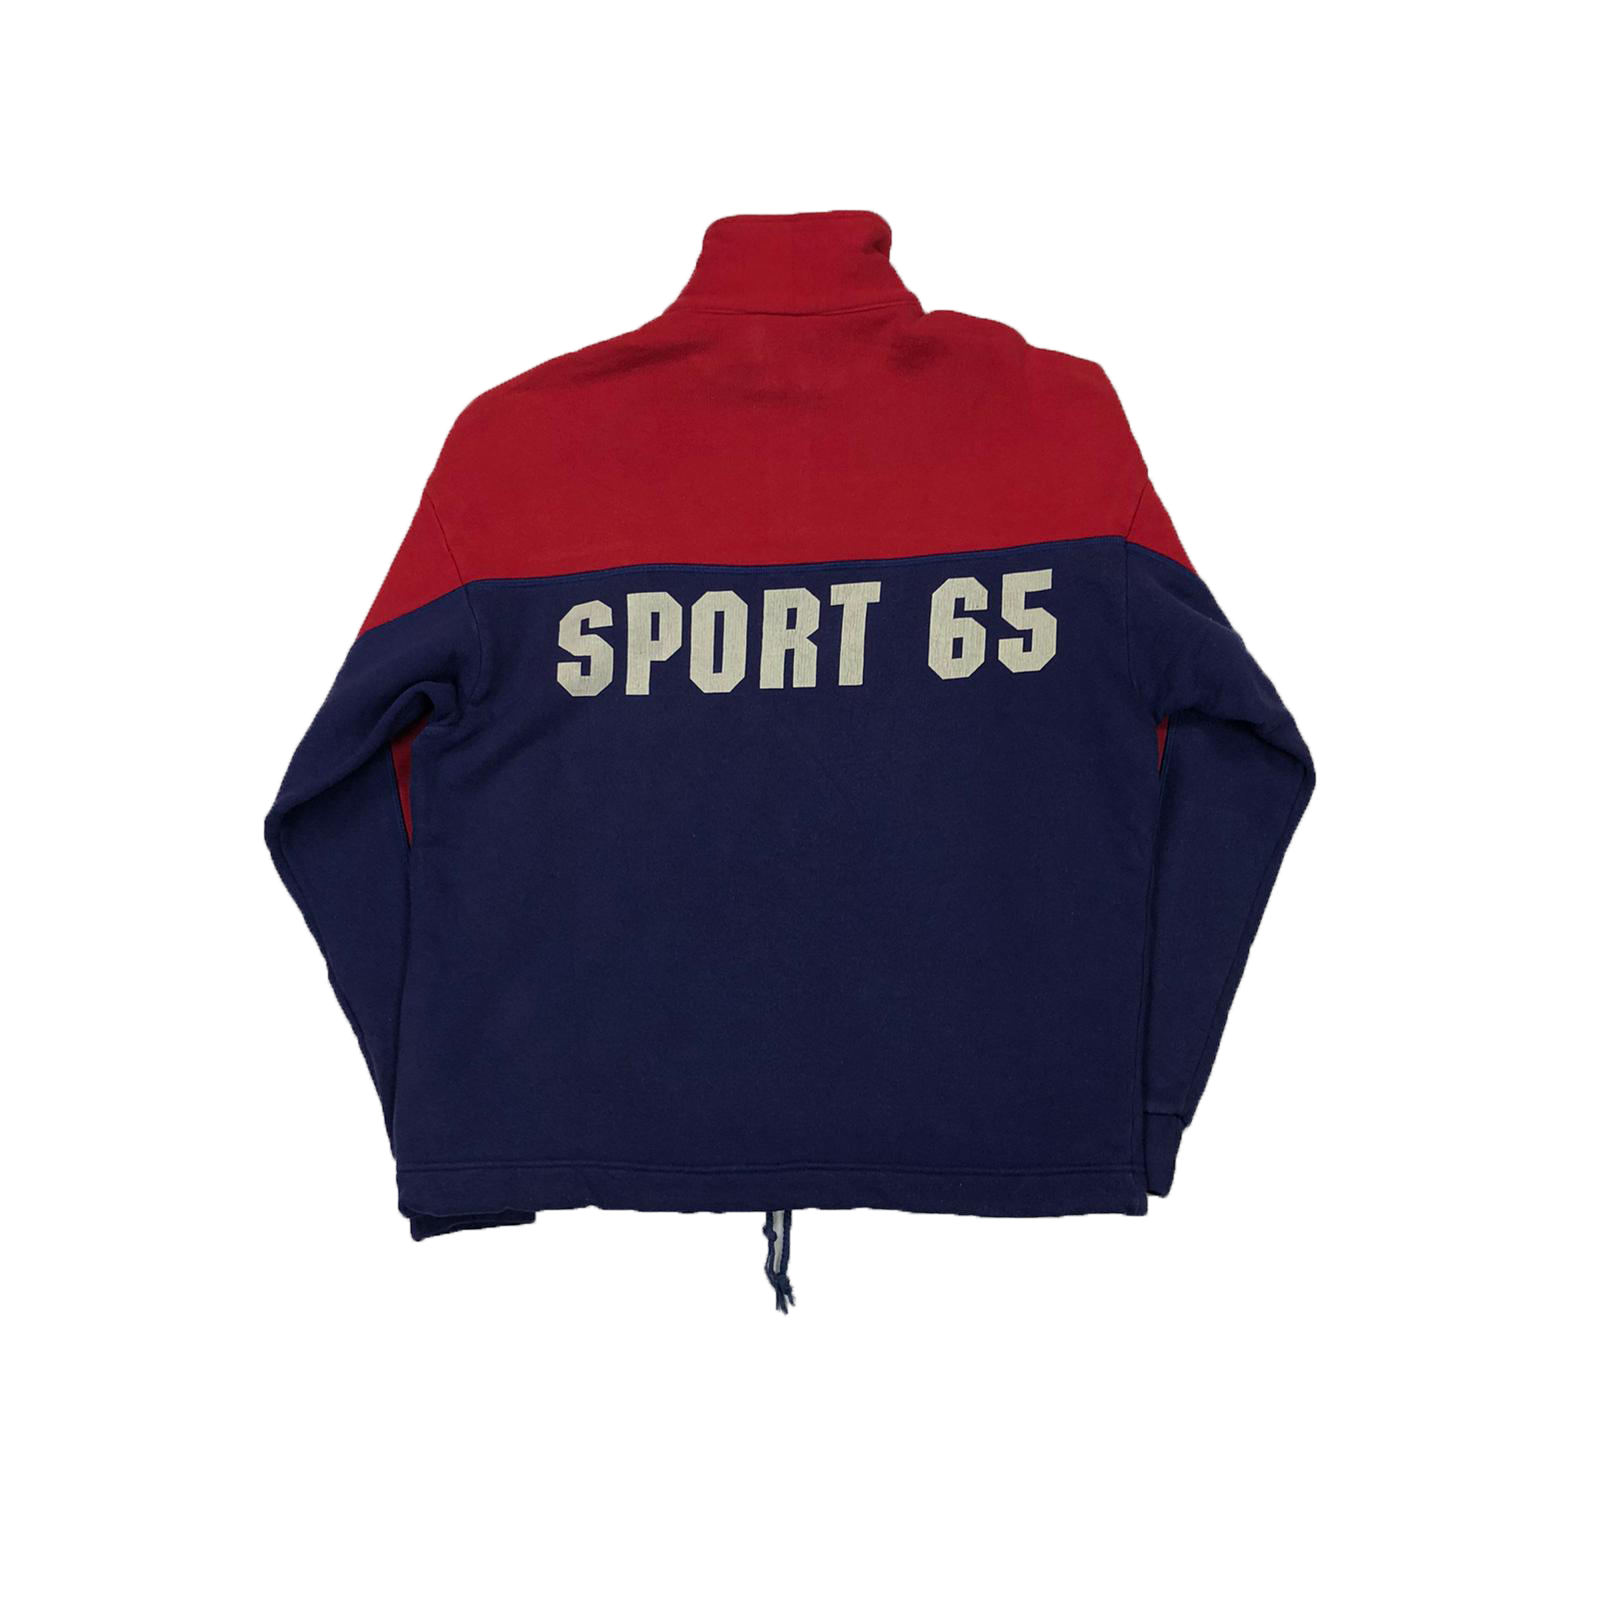 Benetton 1/4 zip sweatshirt